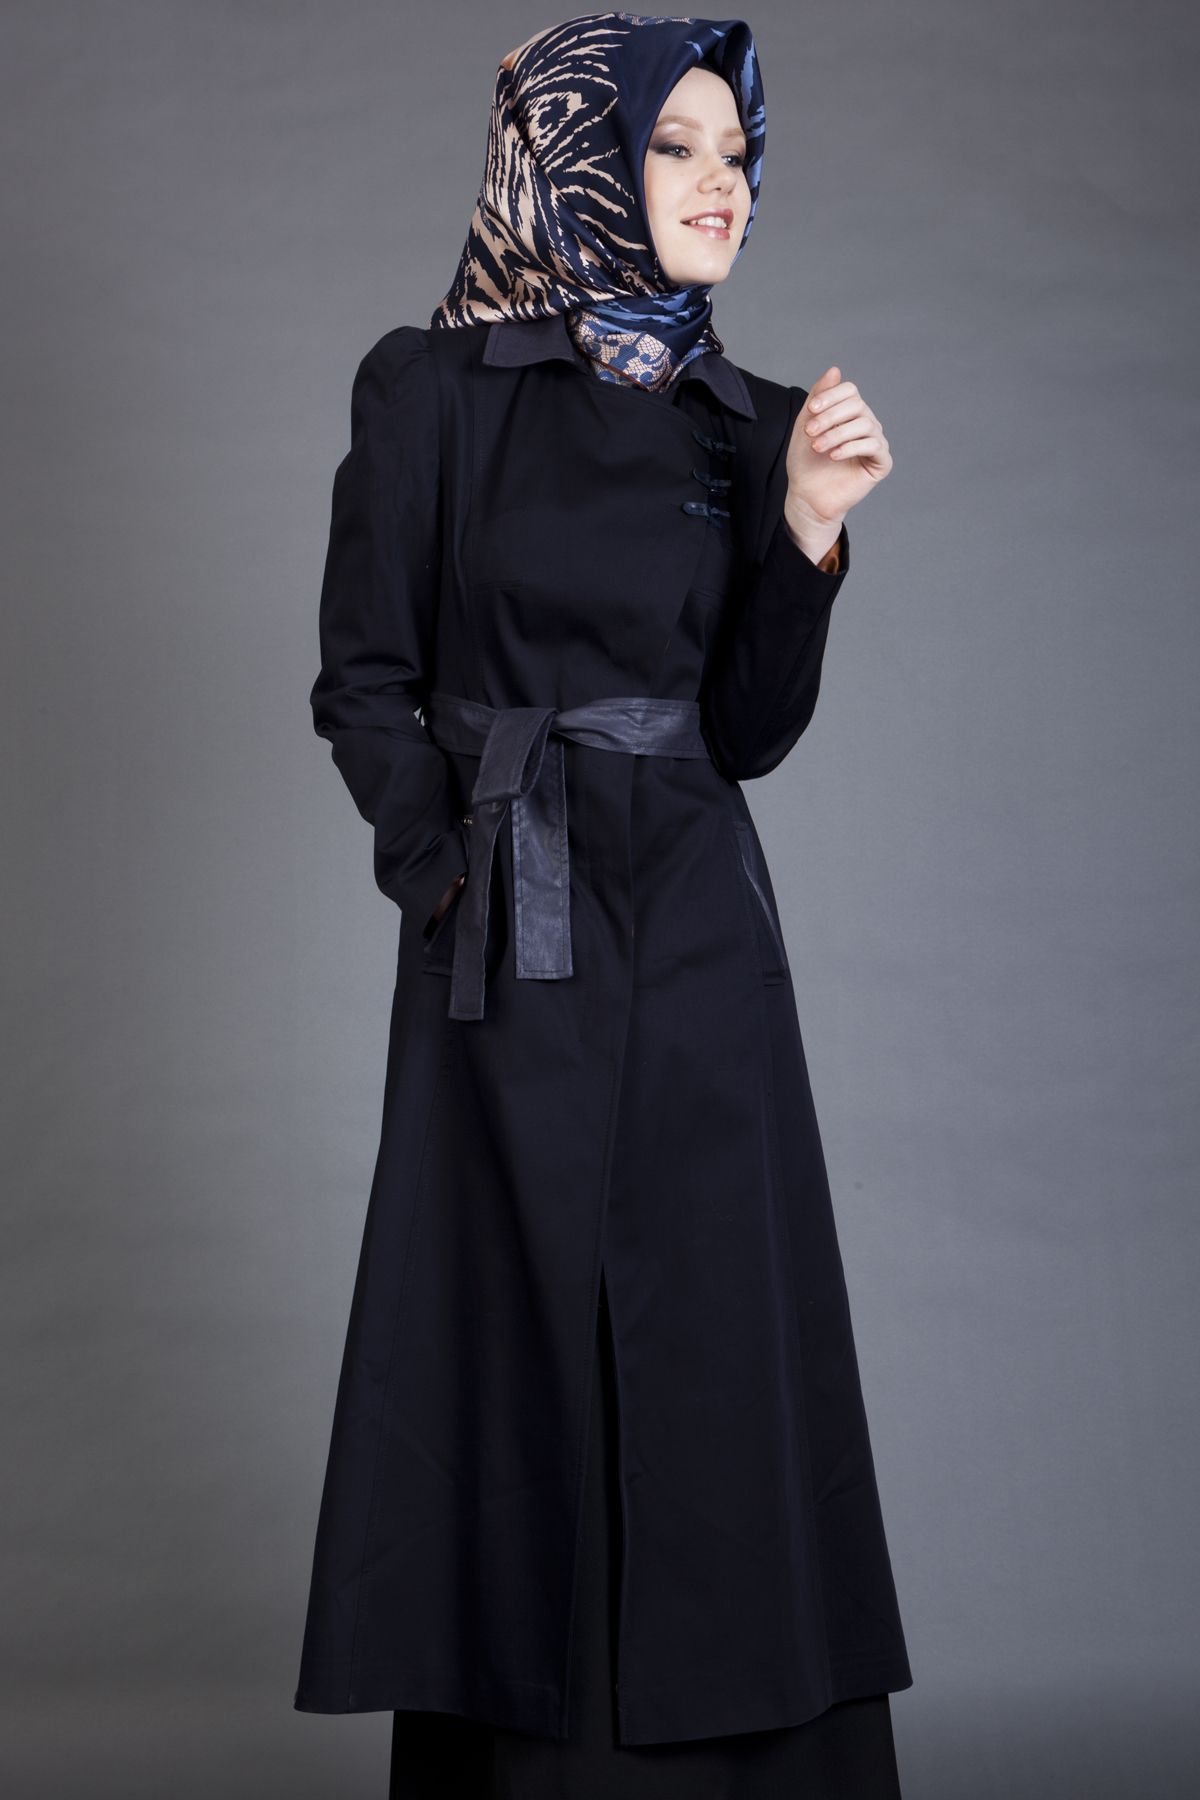 Rainy day | My Style | Pinterest | Islamic clothing ...